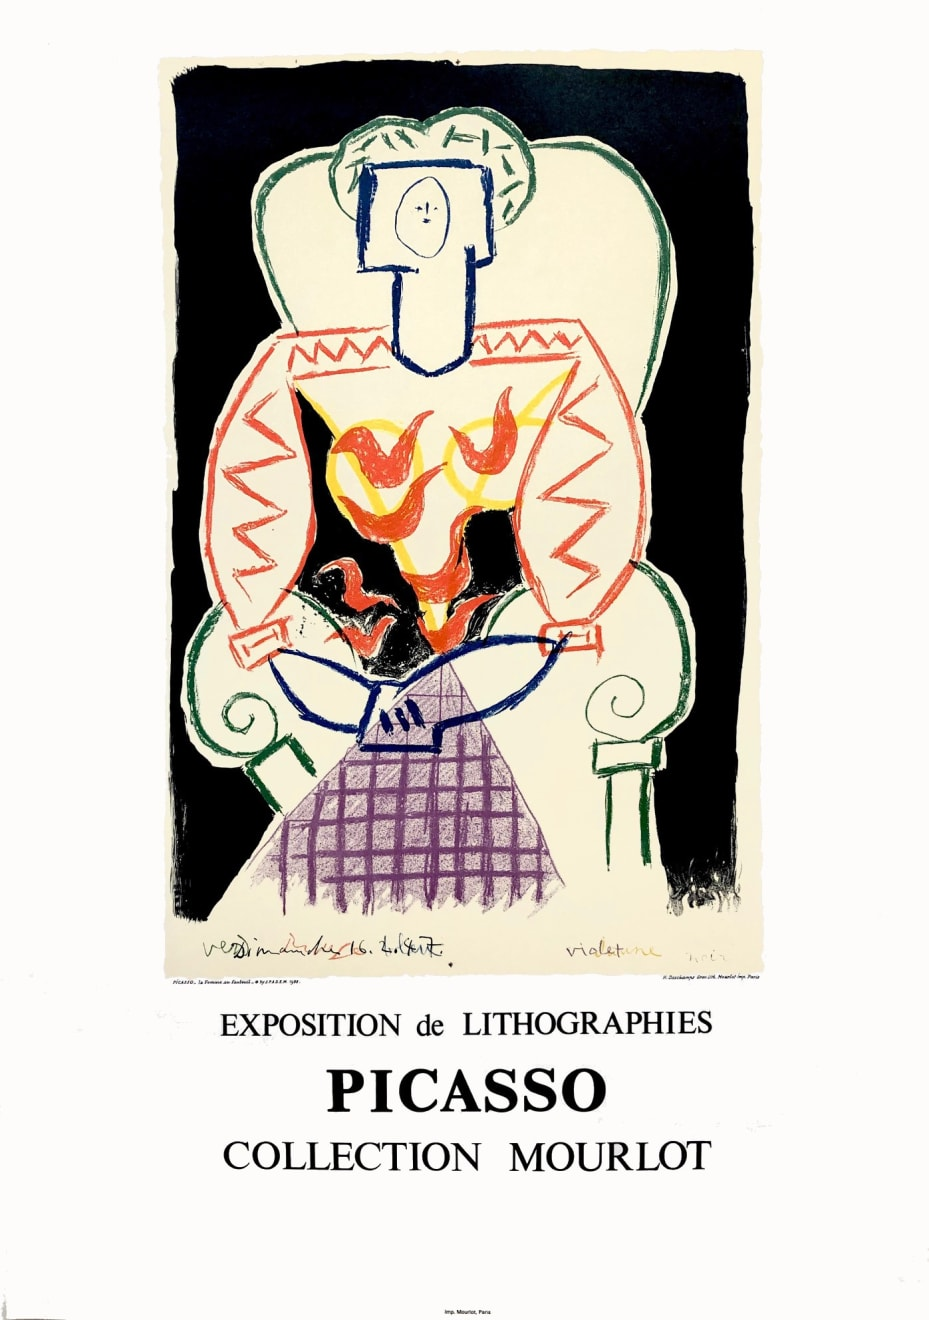 Pablo Picasso, 'Exposition de Lithographies' Picasso Poster, 1988